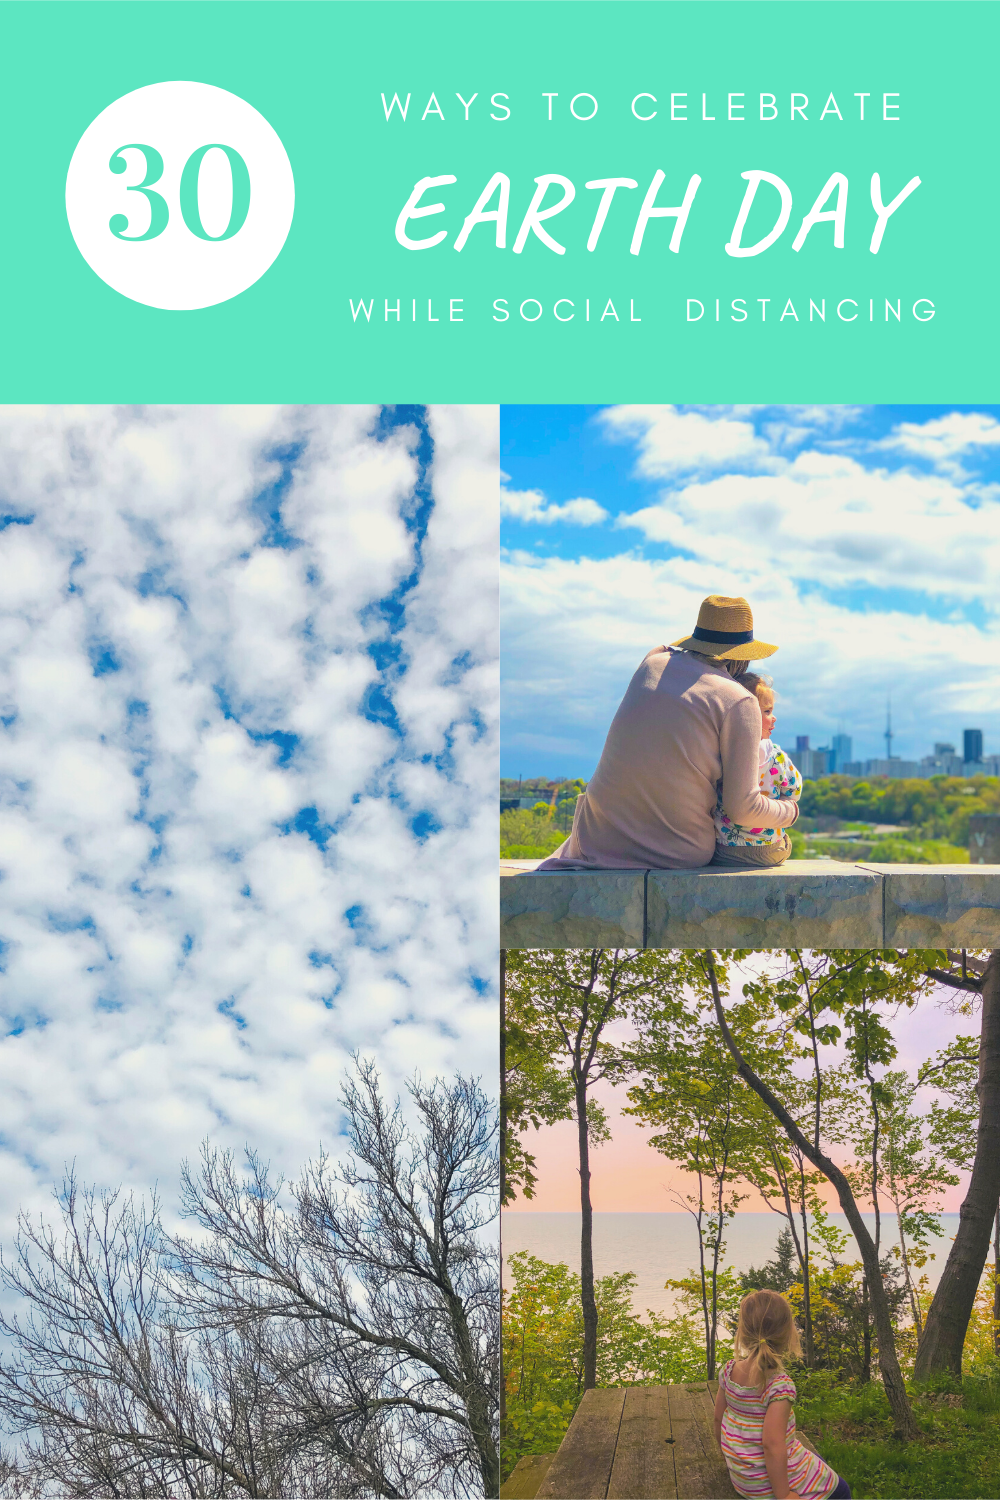 How to Celebrate Earth Day While Social Distancing - Outdoors & Virtually